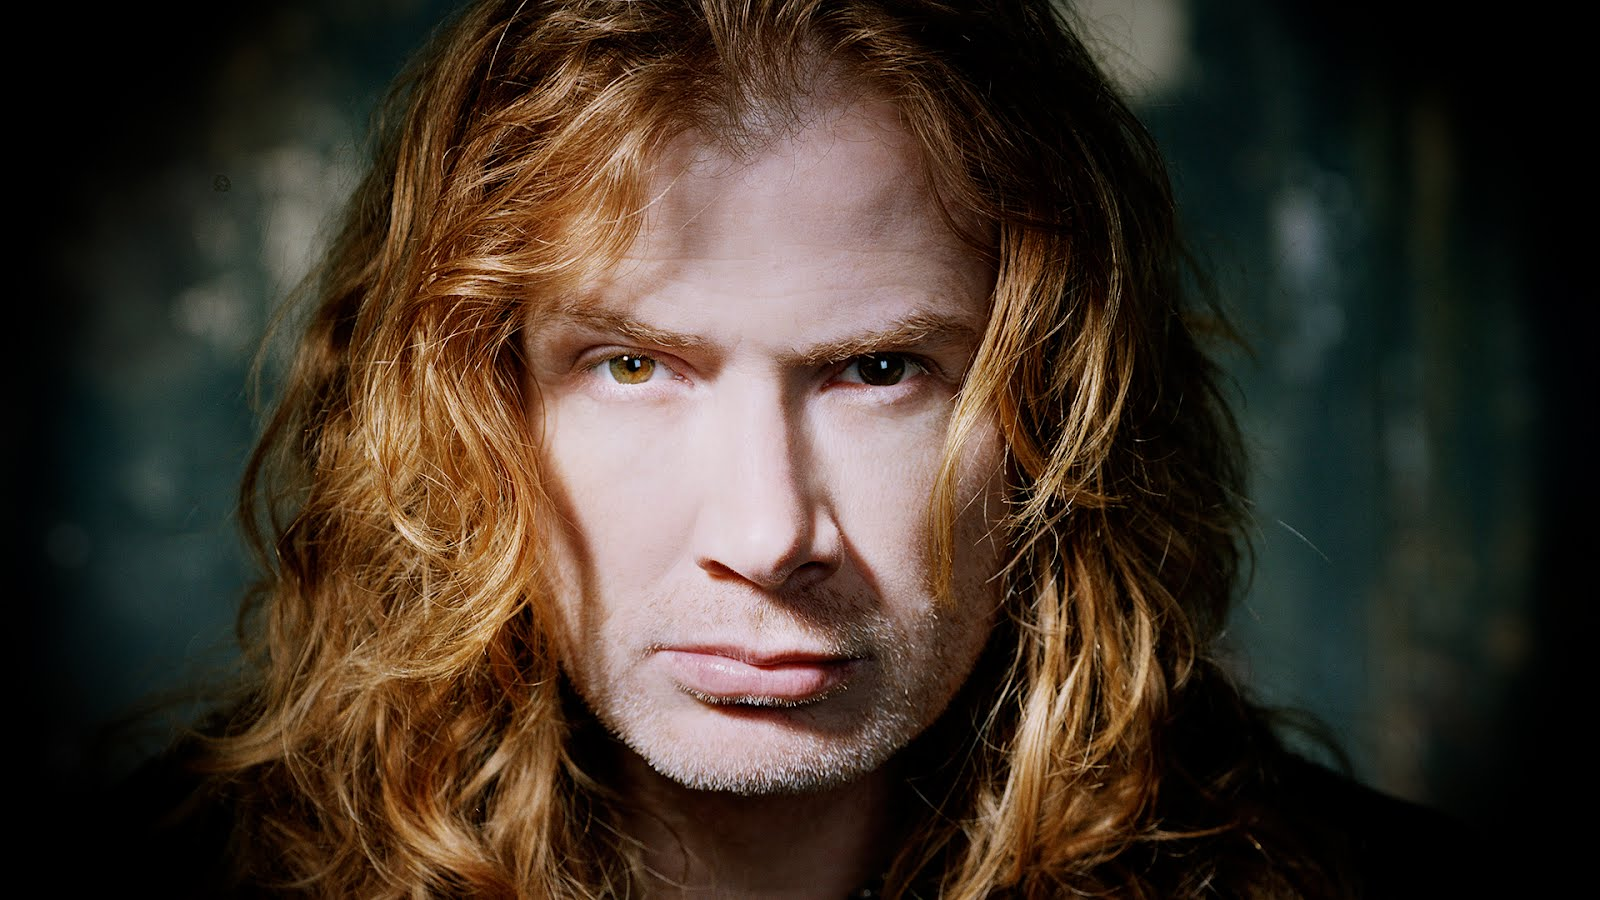 Dave Mustaine Net Worth